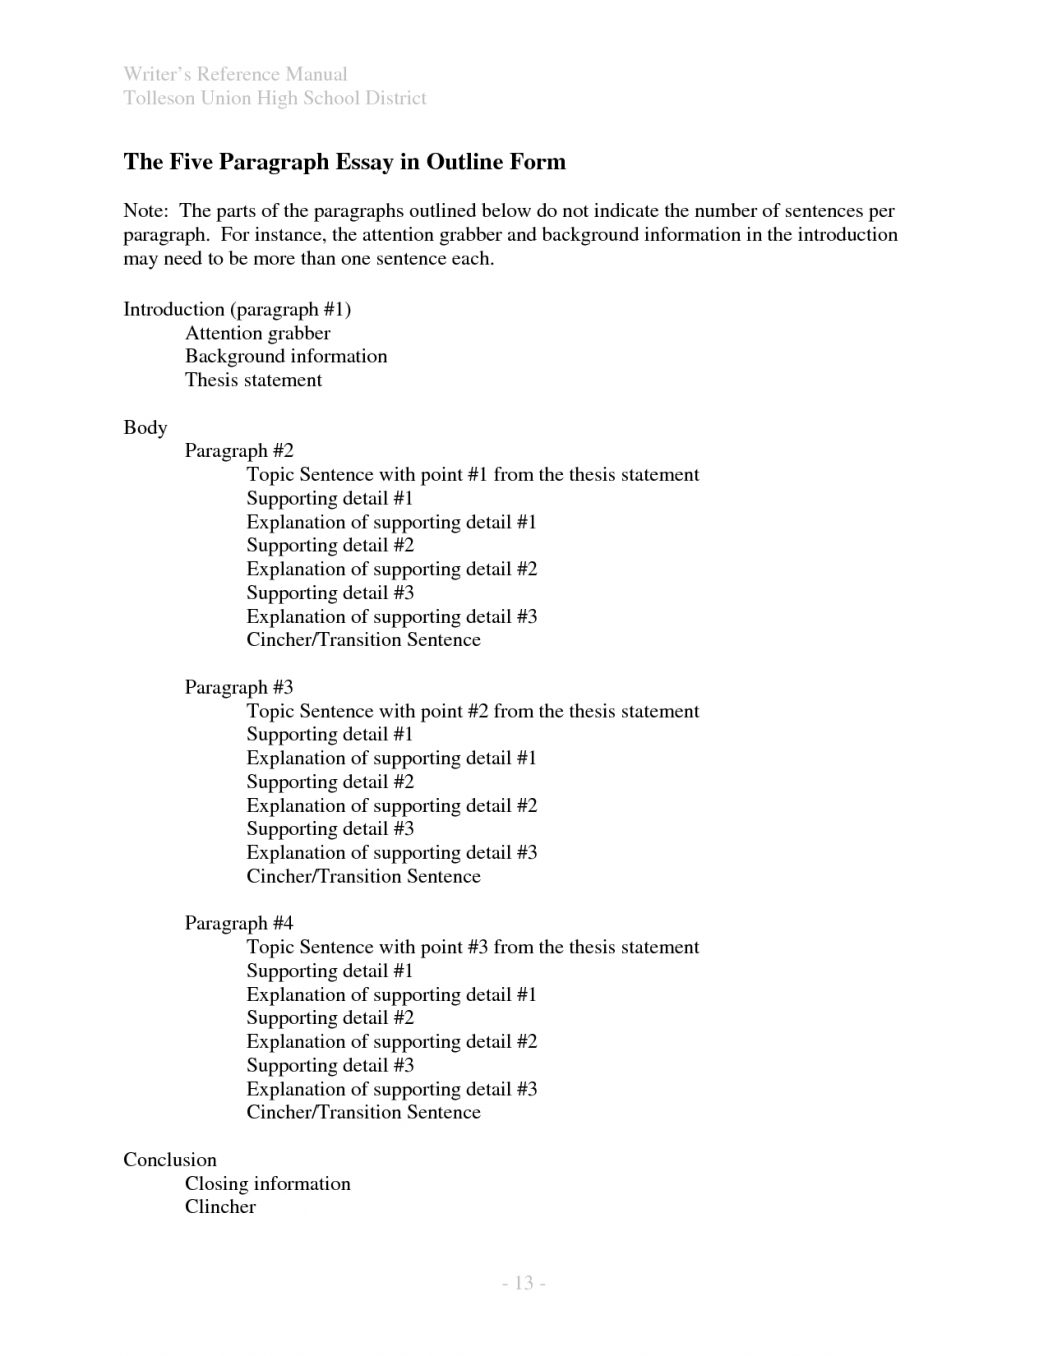 009 Research Paper An Outline For Argumentative Essay Abortion Inside High School How To Write Beautiful A Good Mla Apa History Full